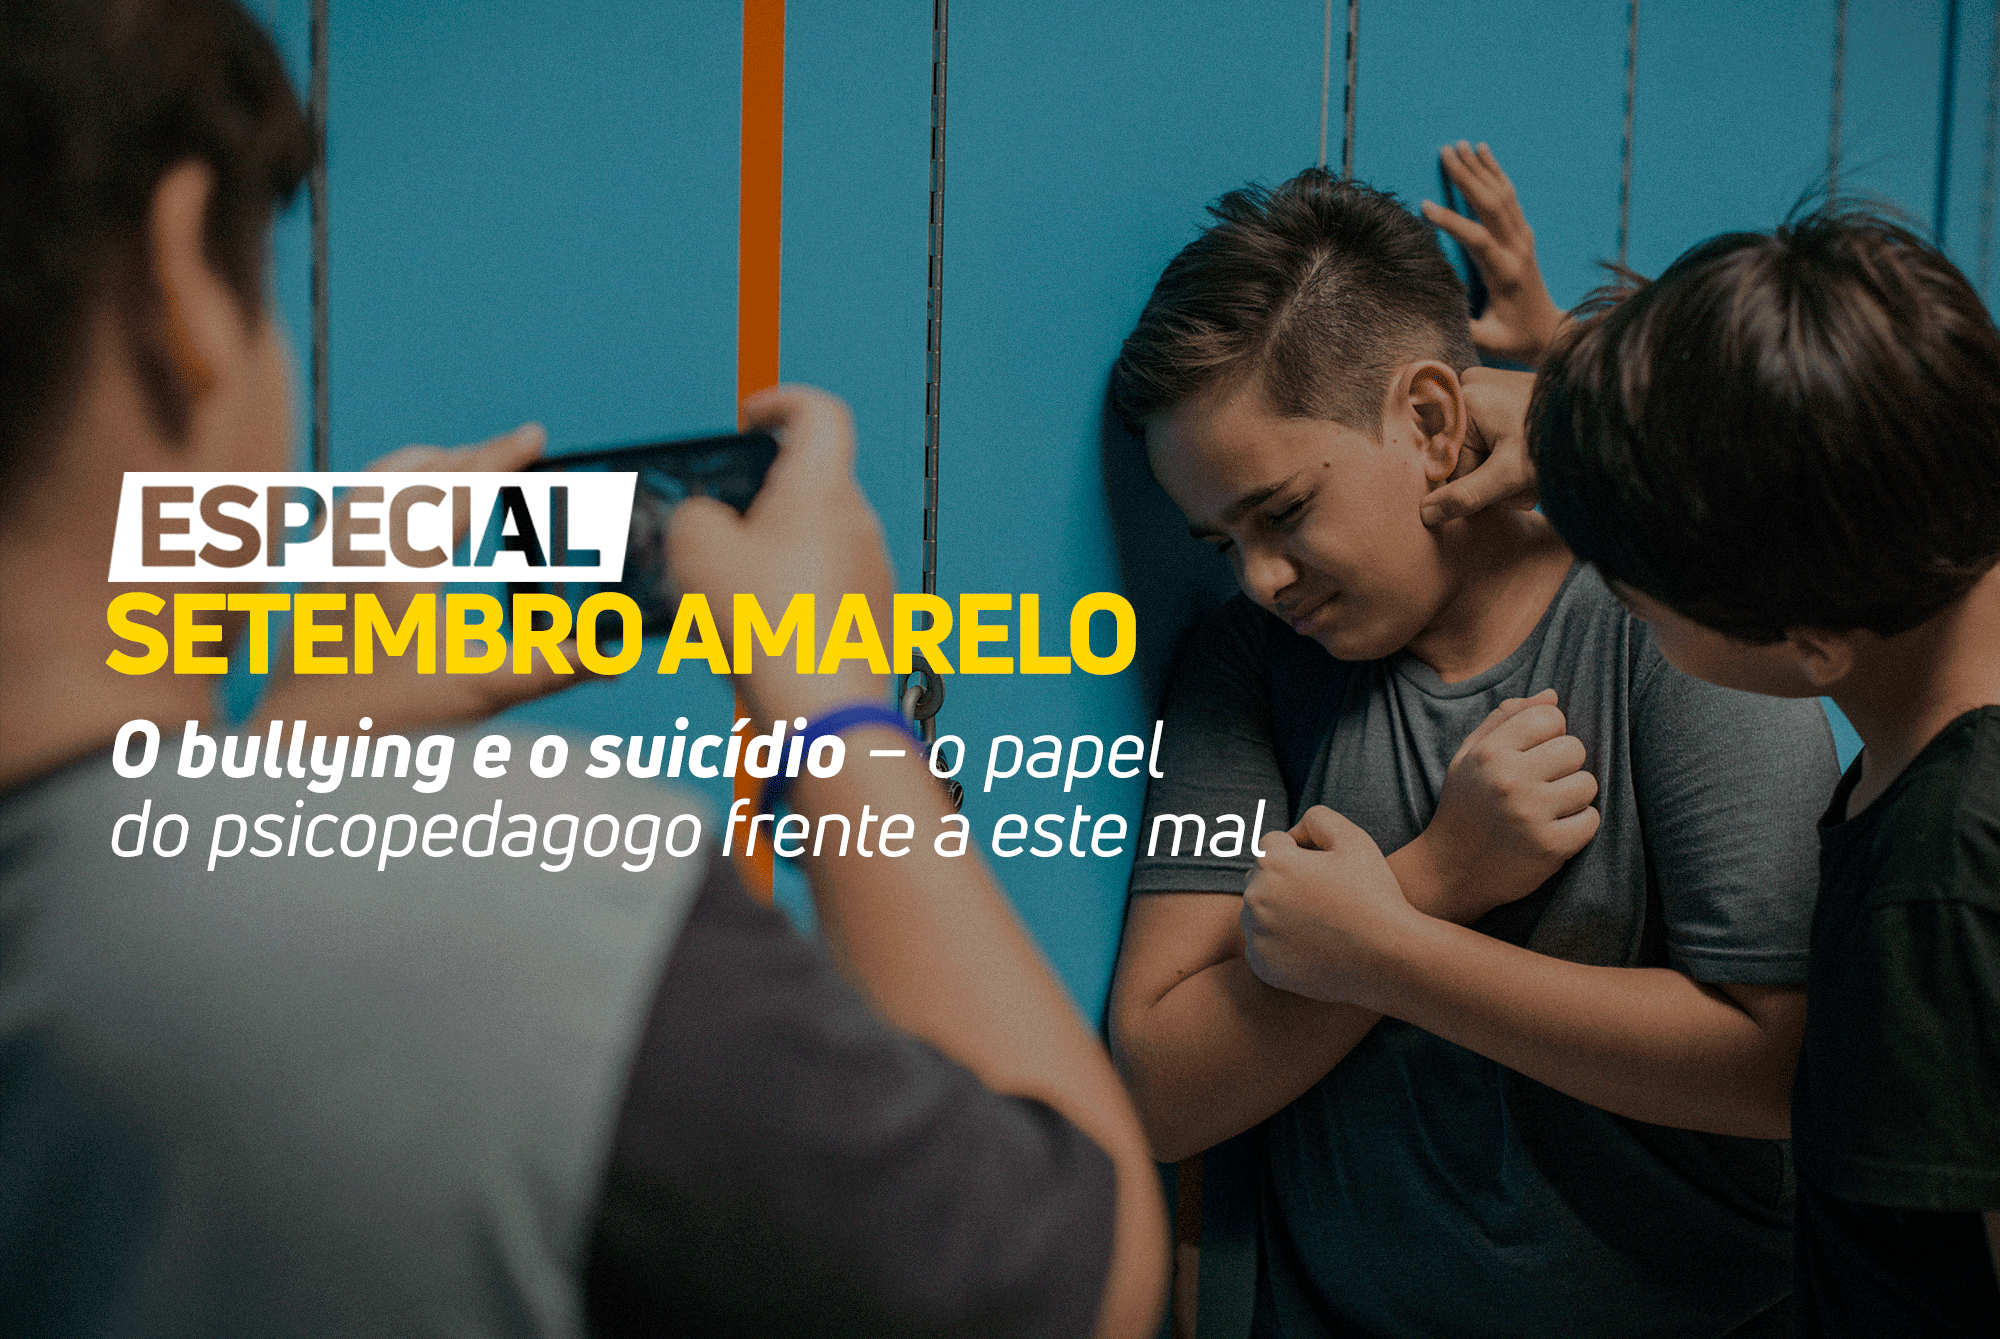 O BULLYING E O SUICÍDIO – O PAPEL DO PSICOPEDAGOGO FRENTE A ESTE MAL